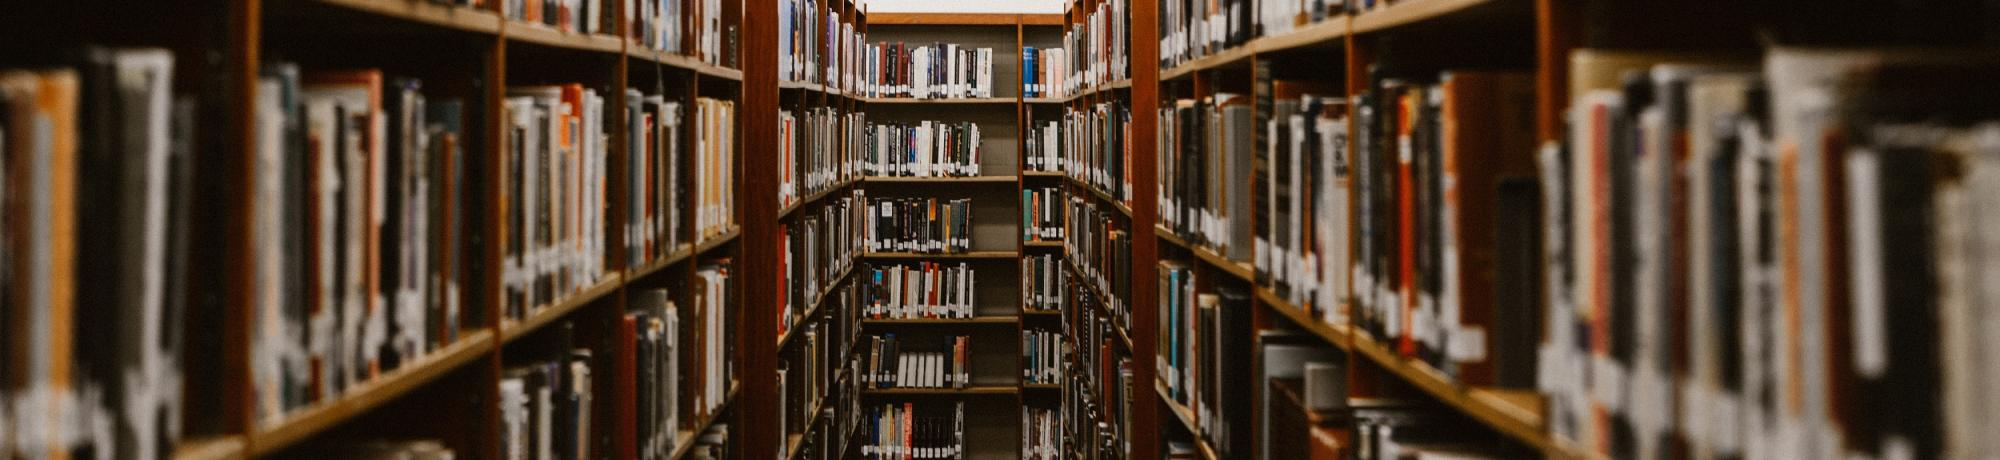 Emphases - Library